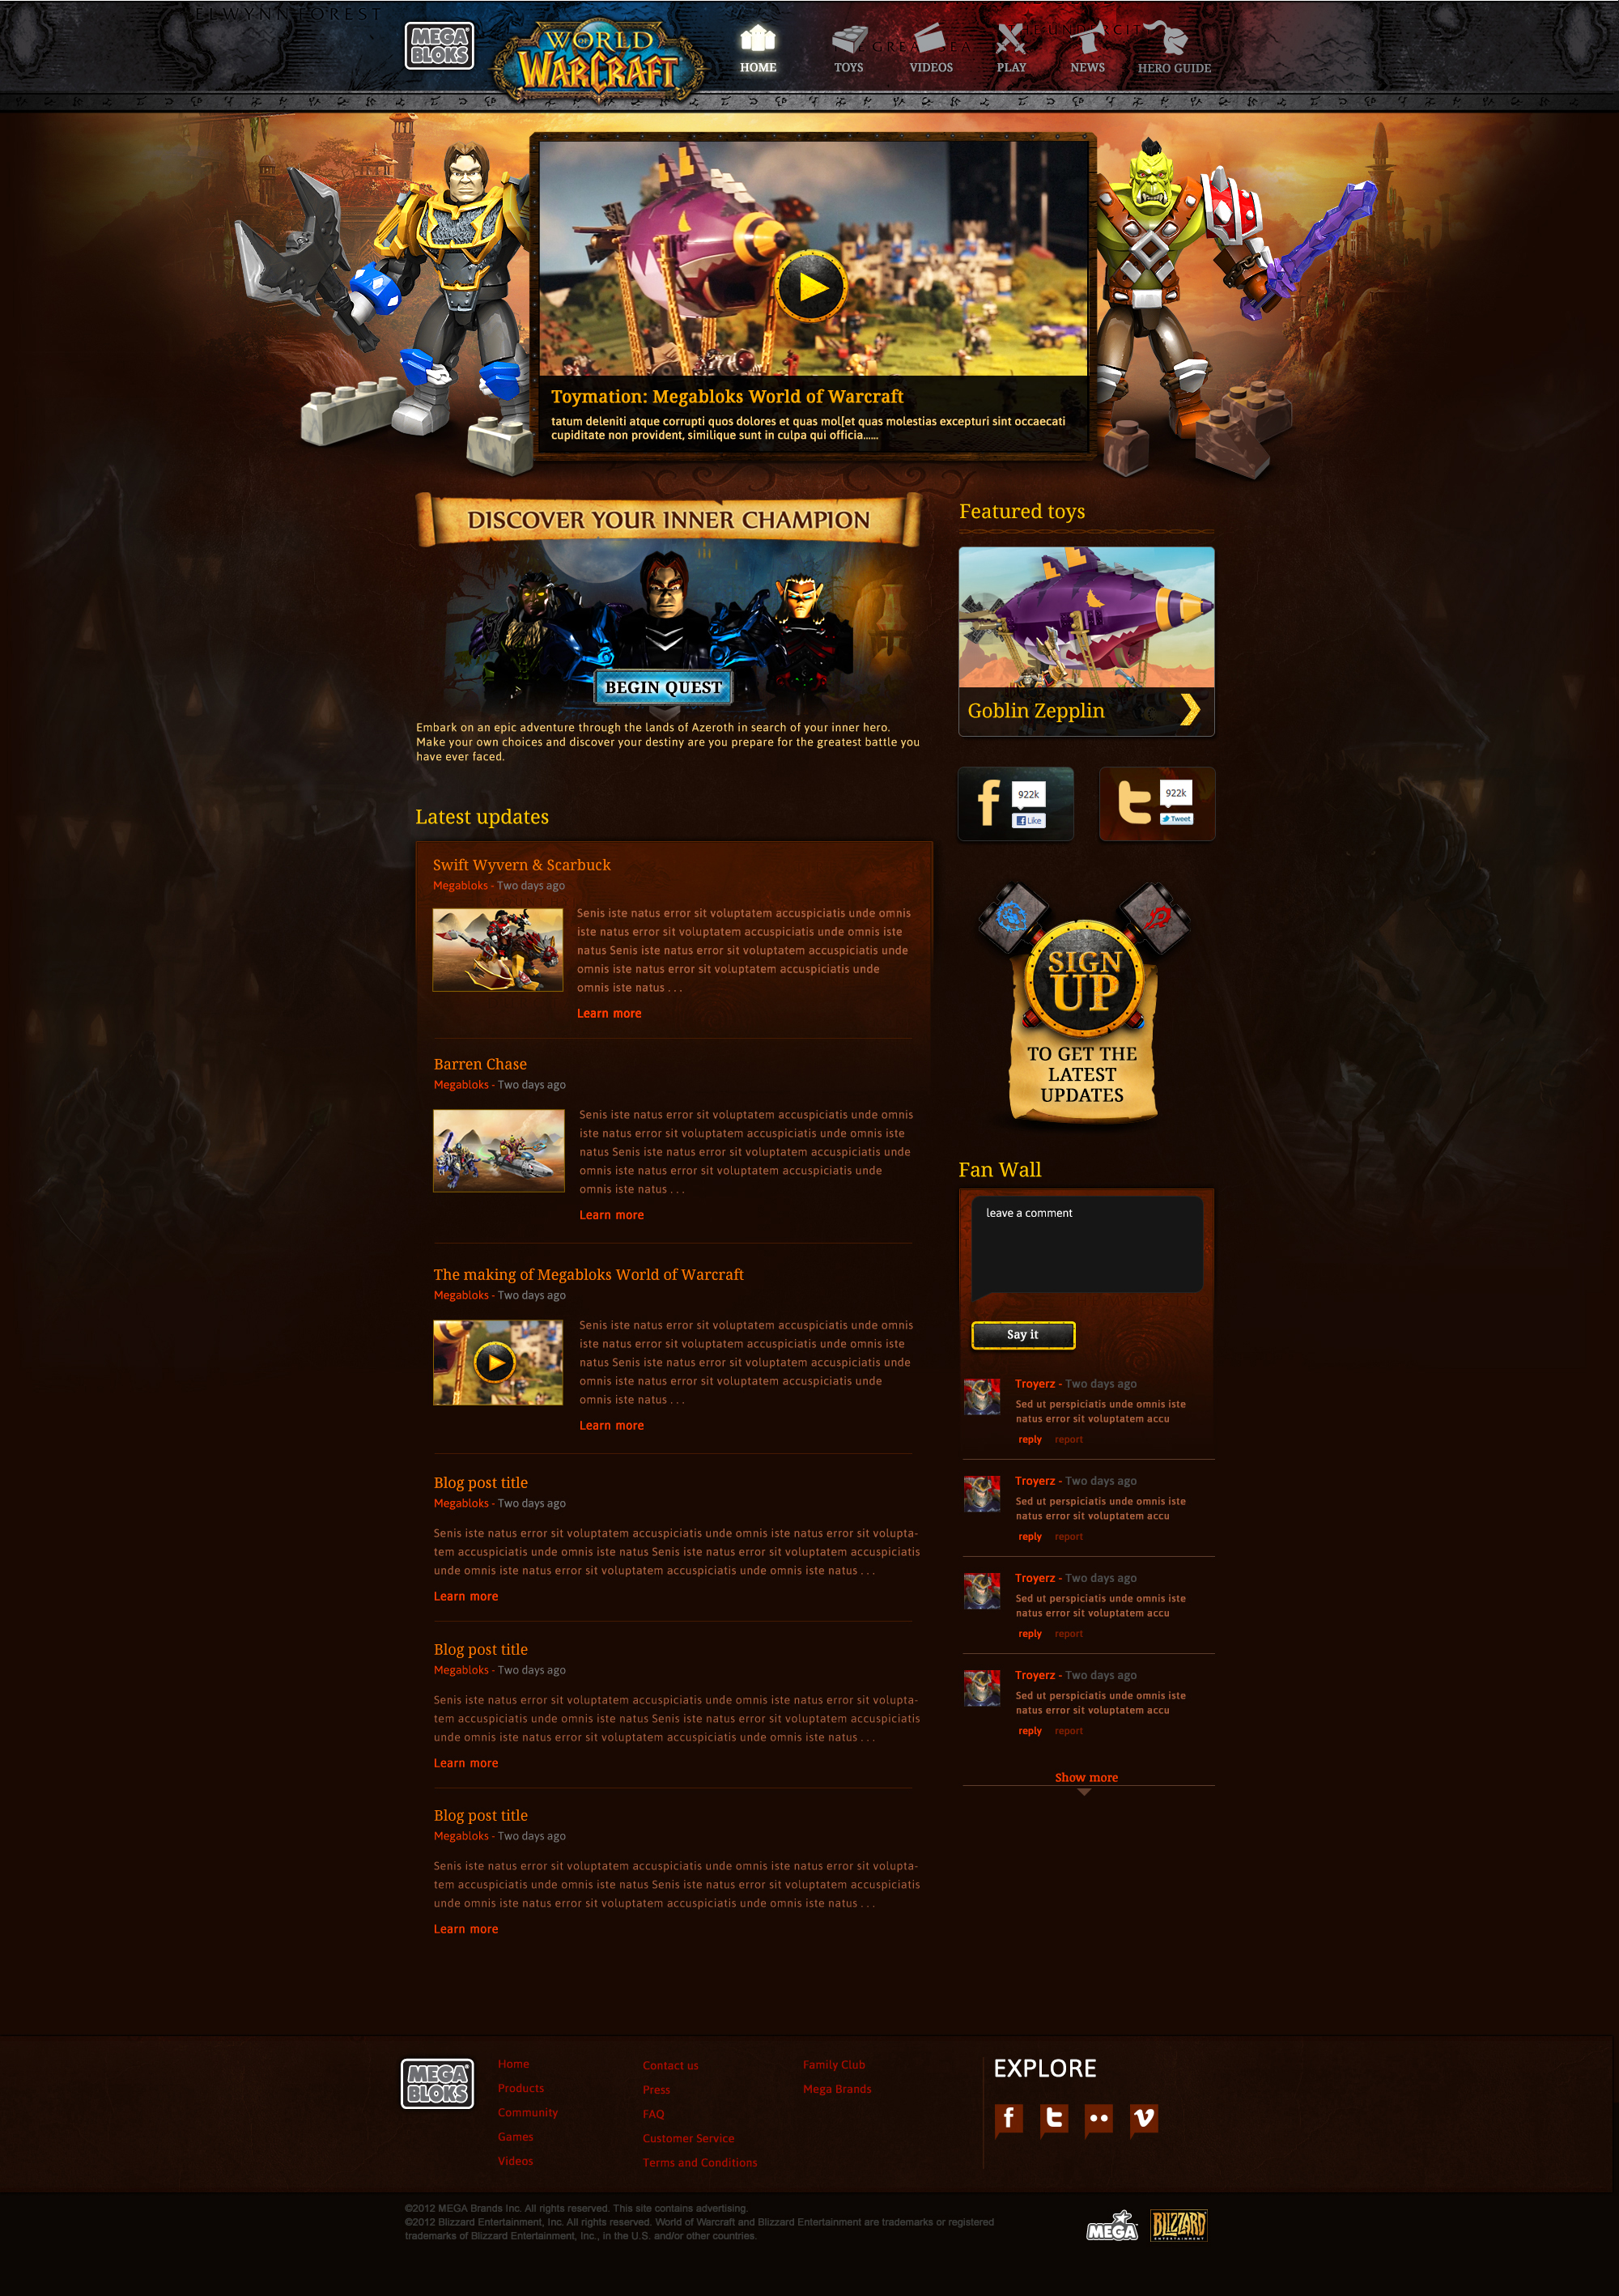 World of Warcraft Website